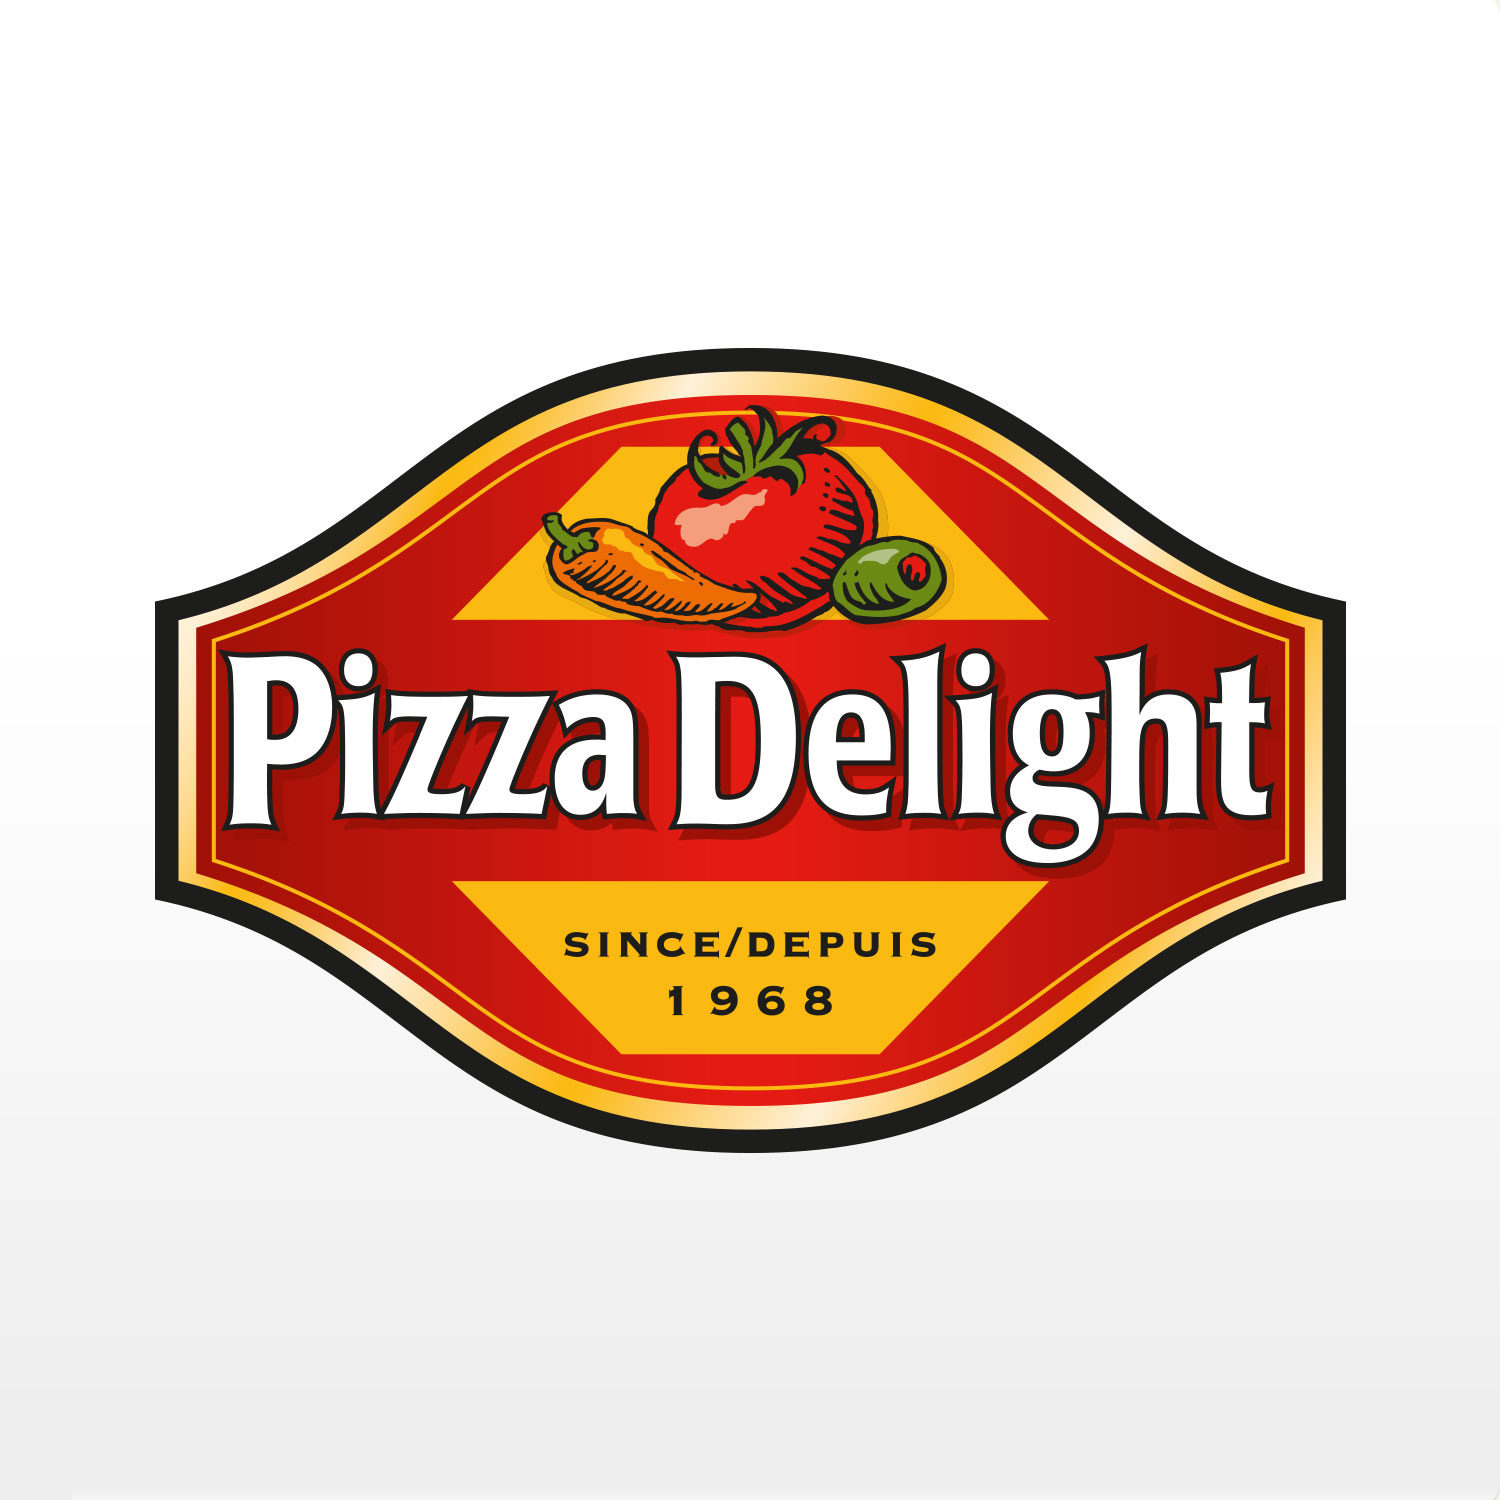 Pizza Delight Sussex